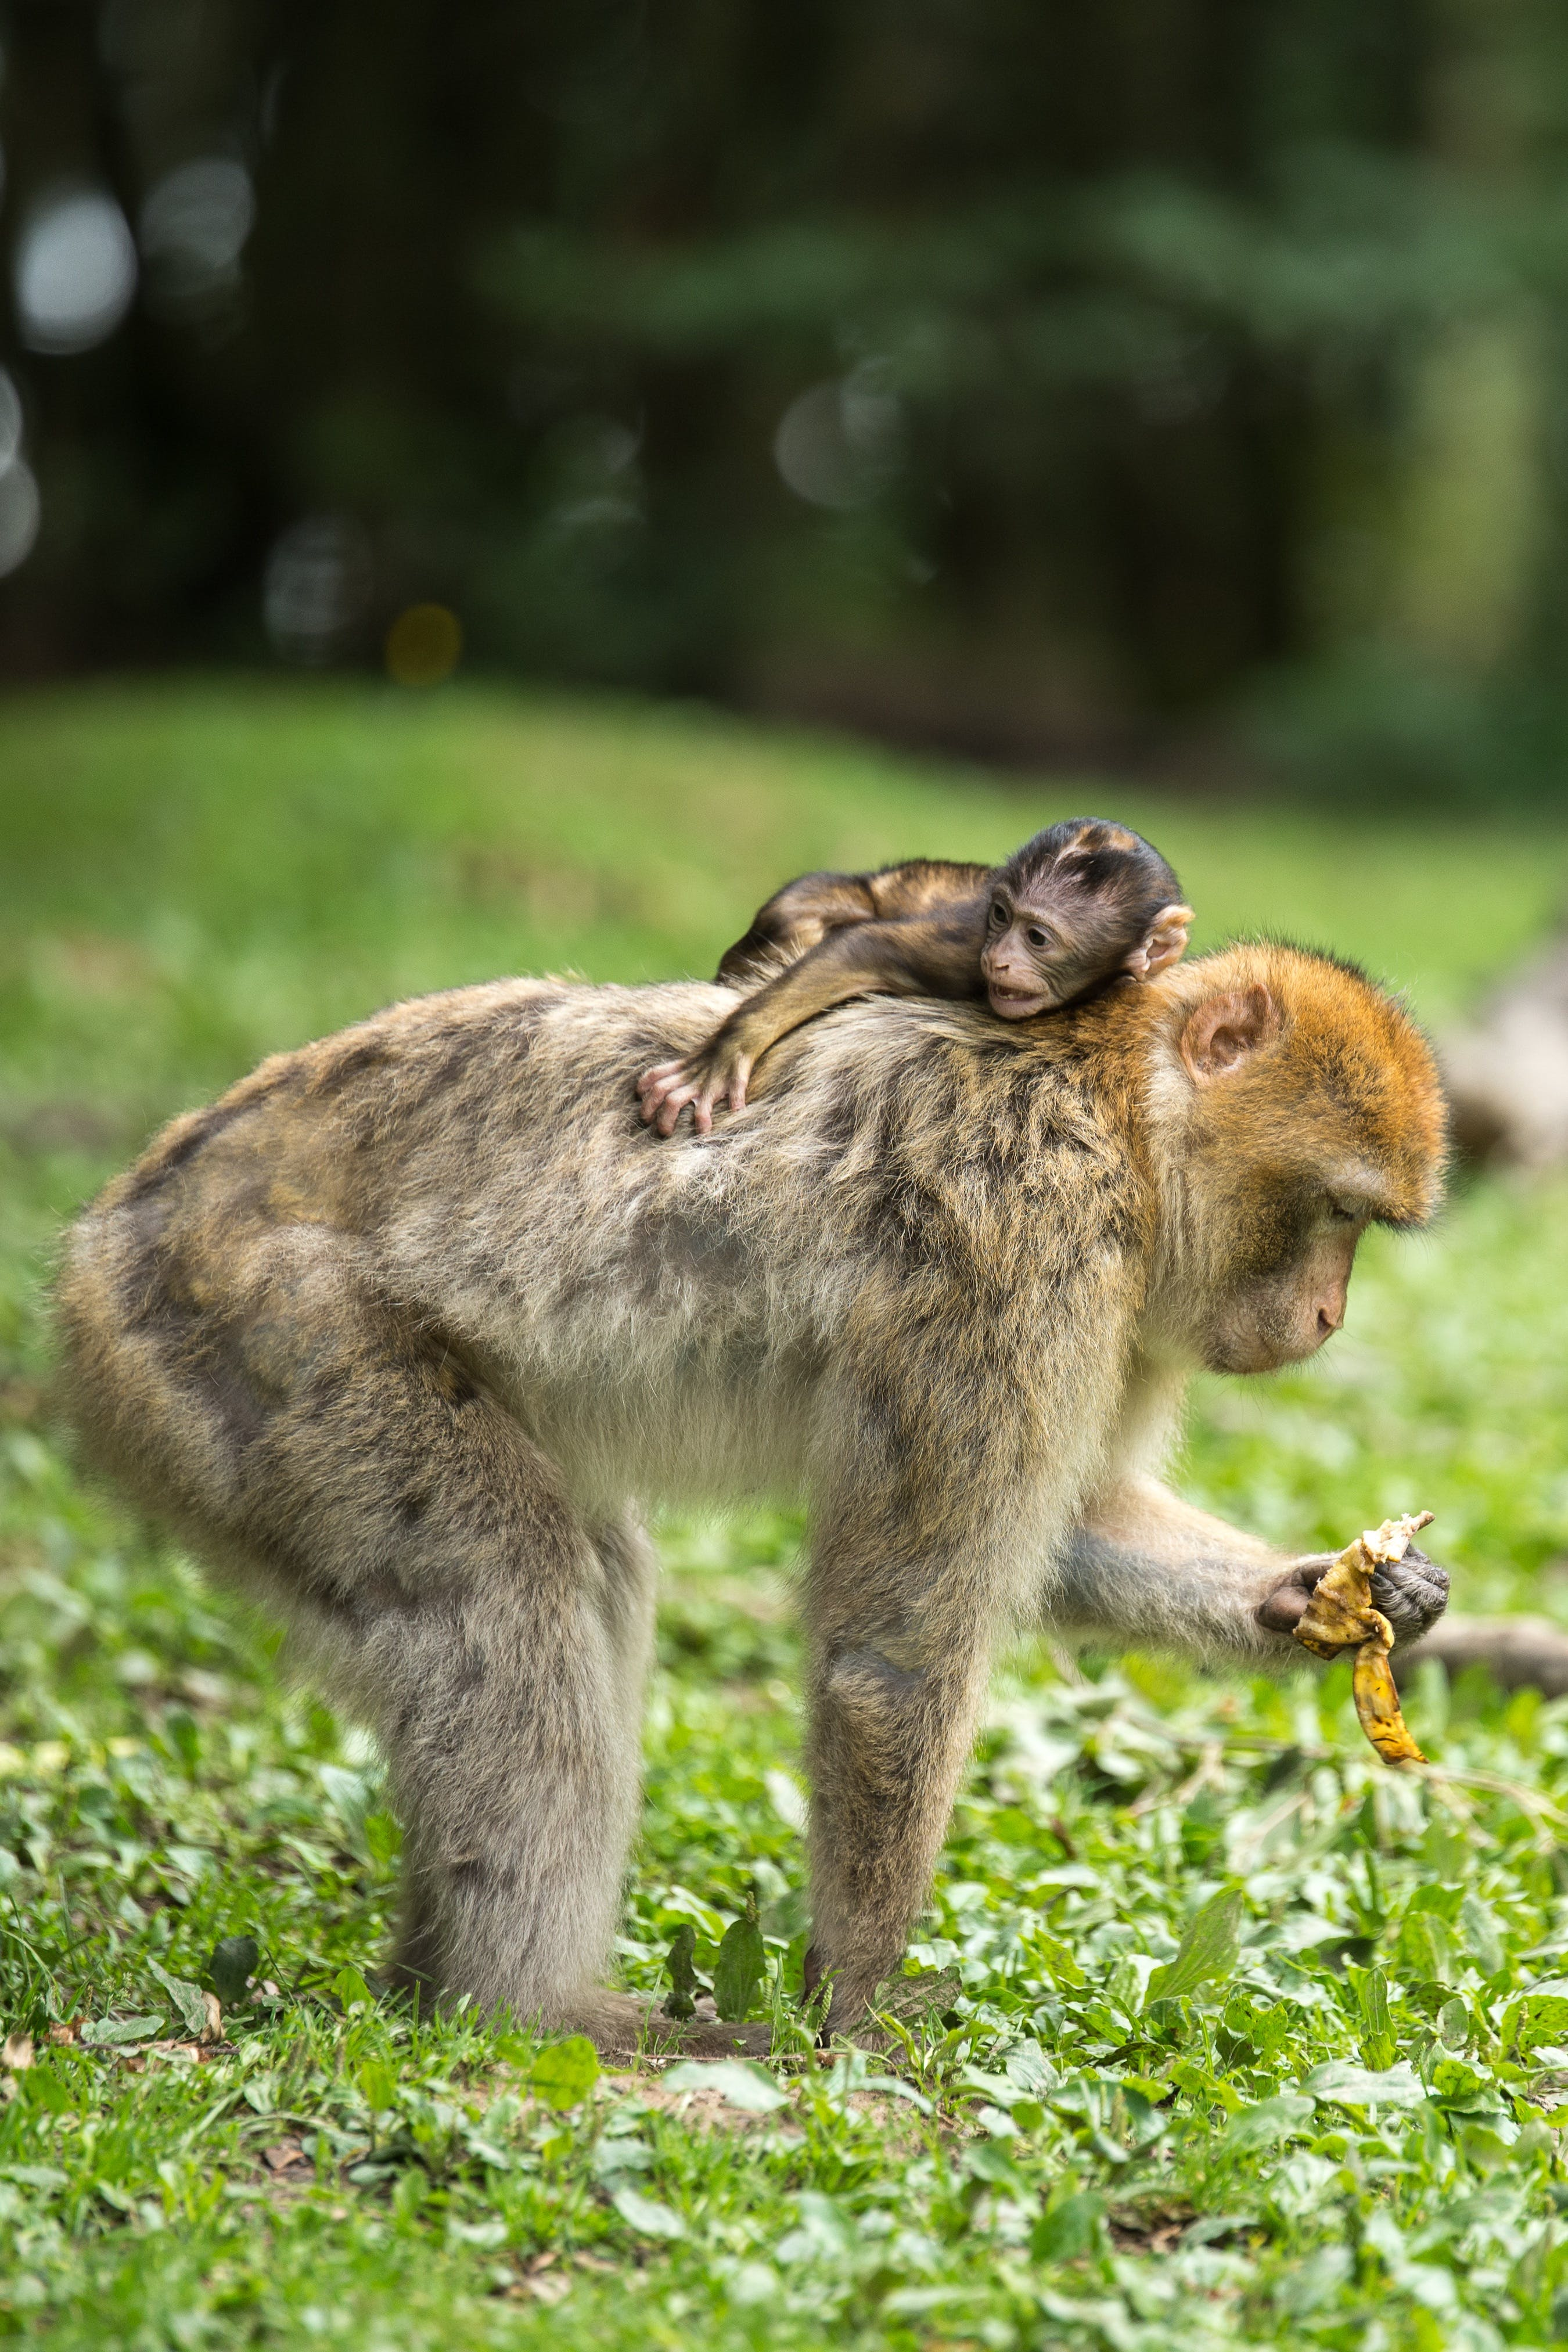 Black Baby Monkey on Top of Brown Monkey Standing on Green Grass